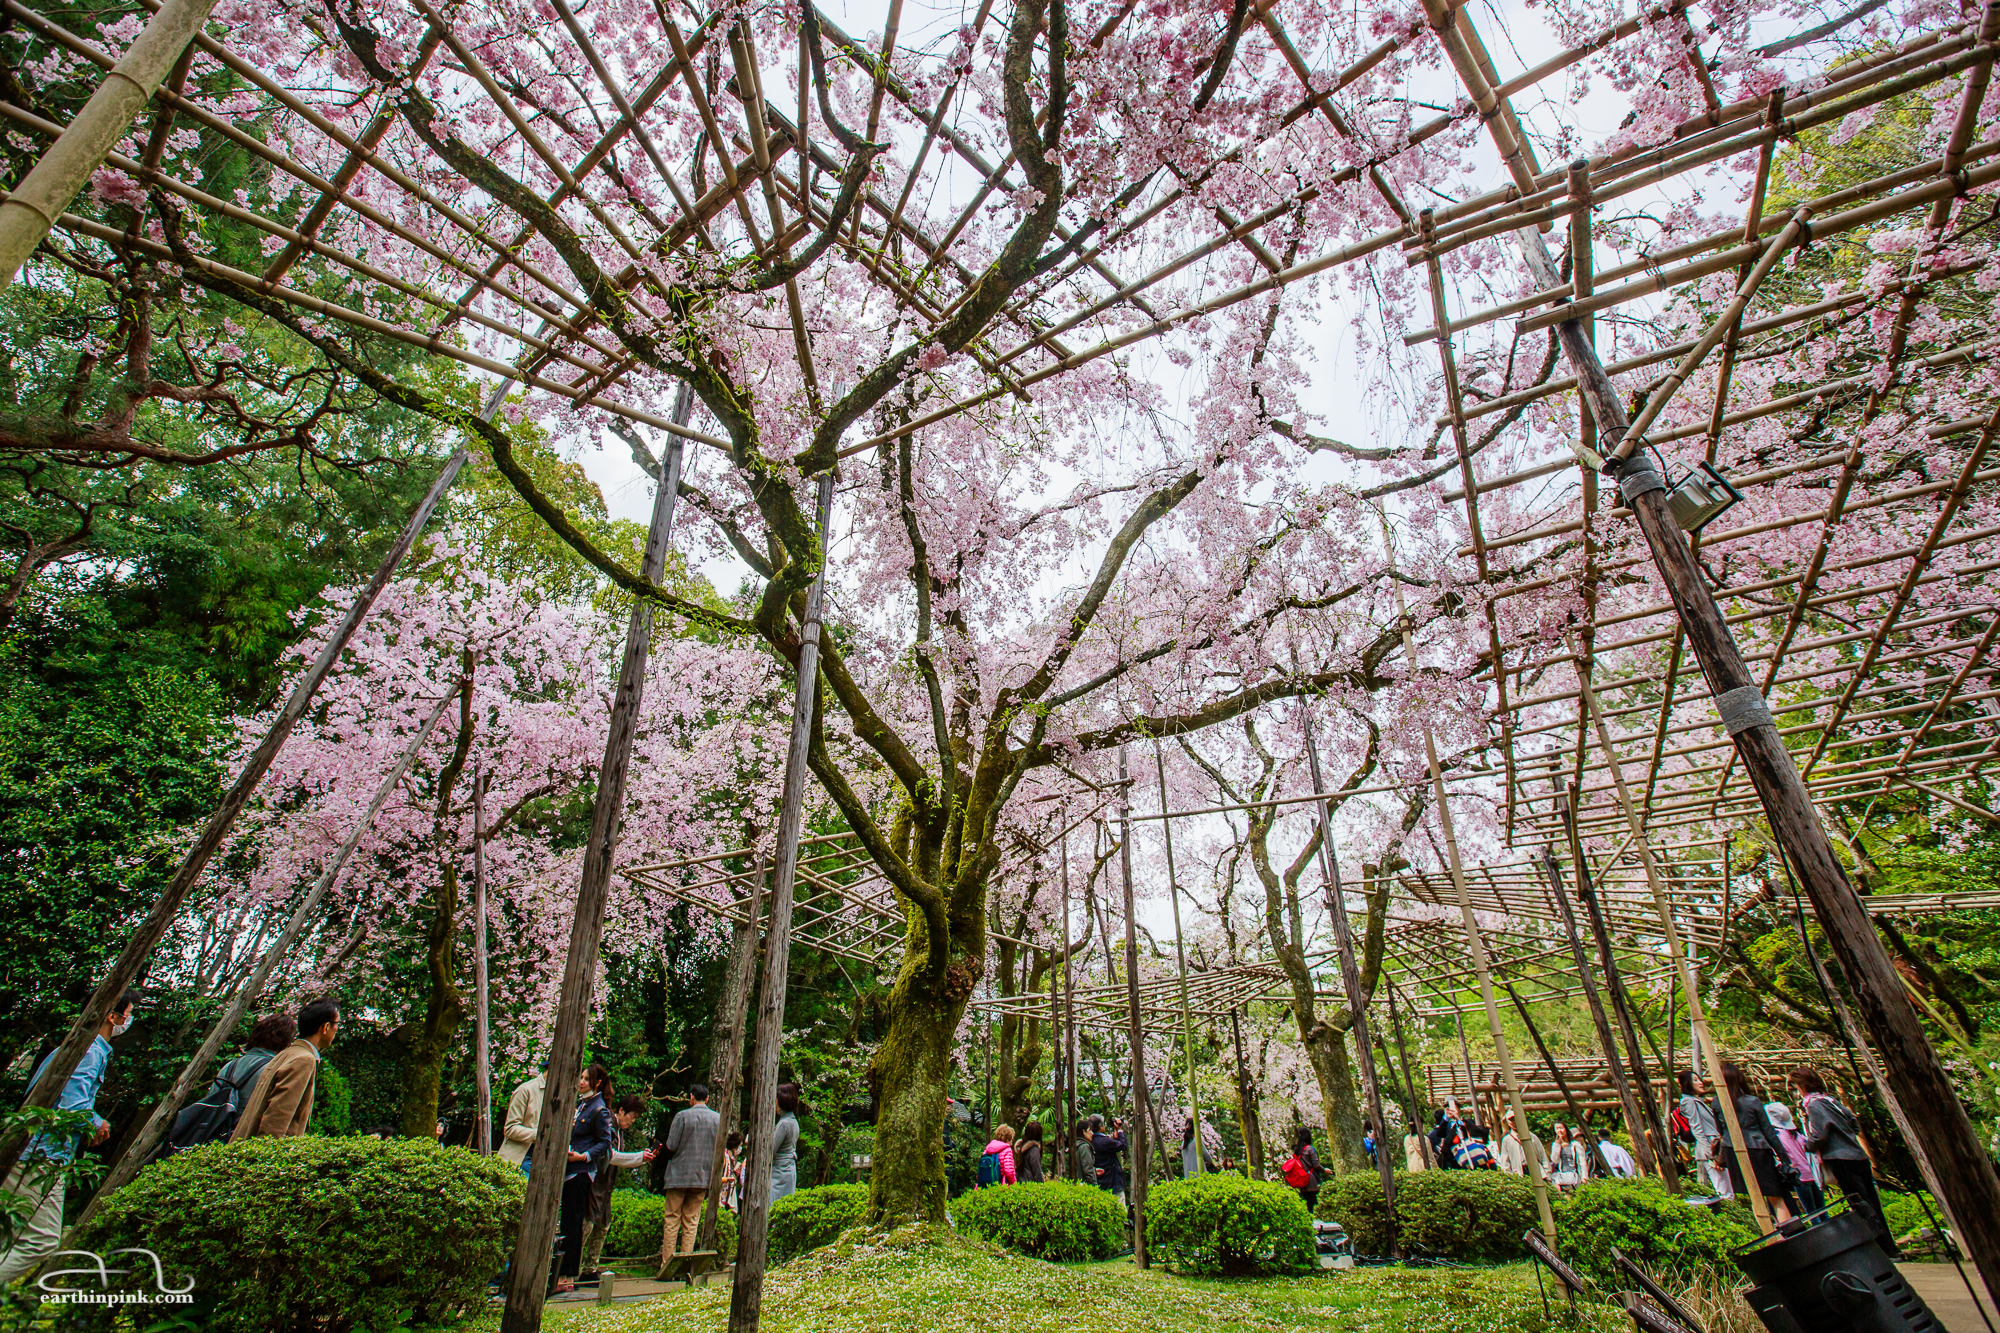 Weeping cherry trees in the gardens of Heian Shrine